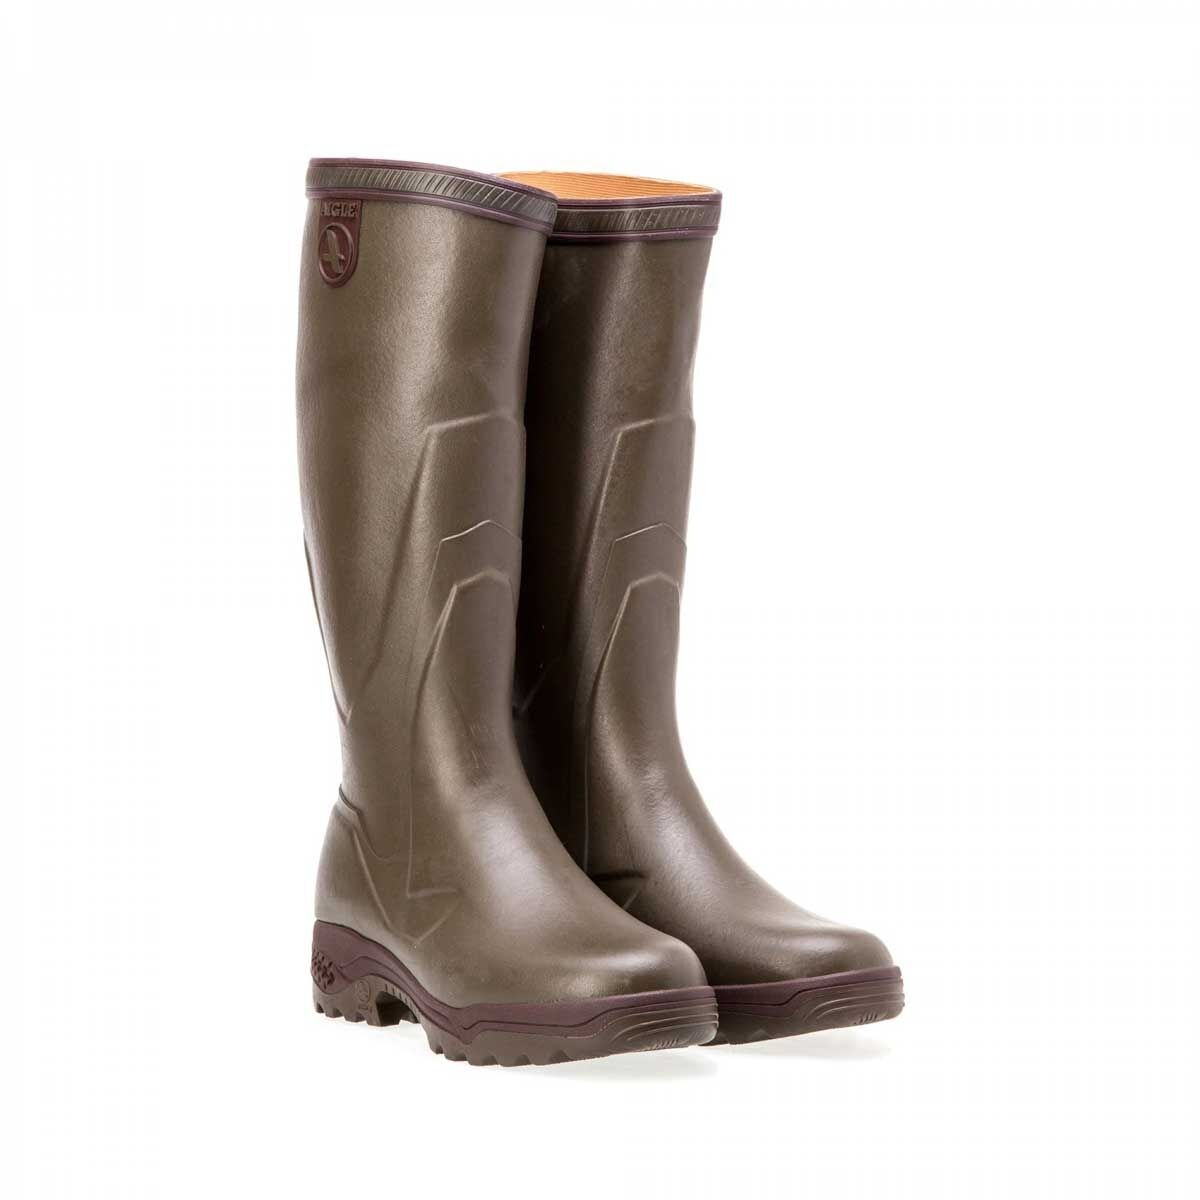 Adults Ladies Mens Parcours 2 Enduro by Aigle Wellington Boots Walking Outdoor